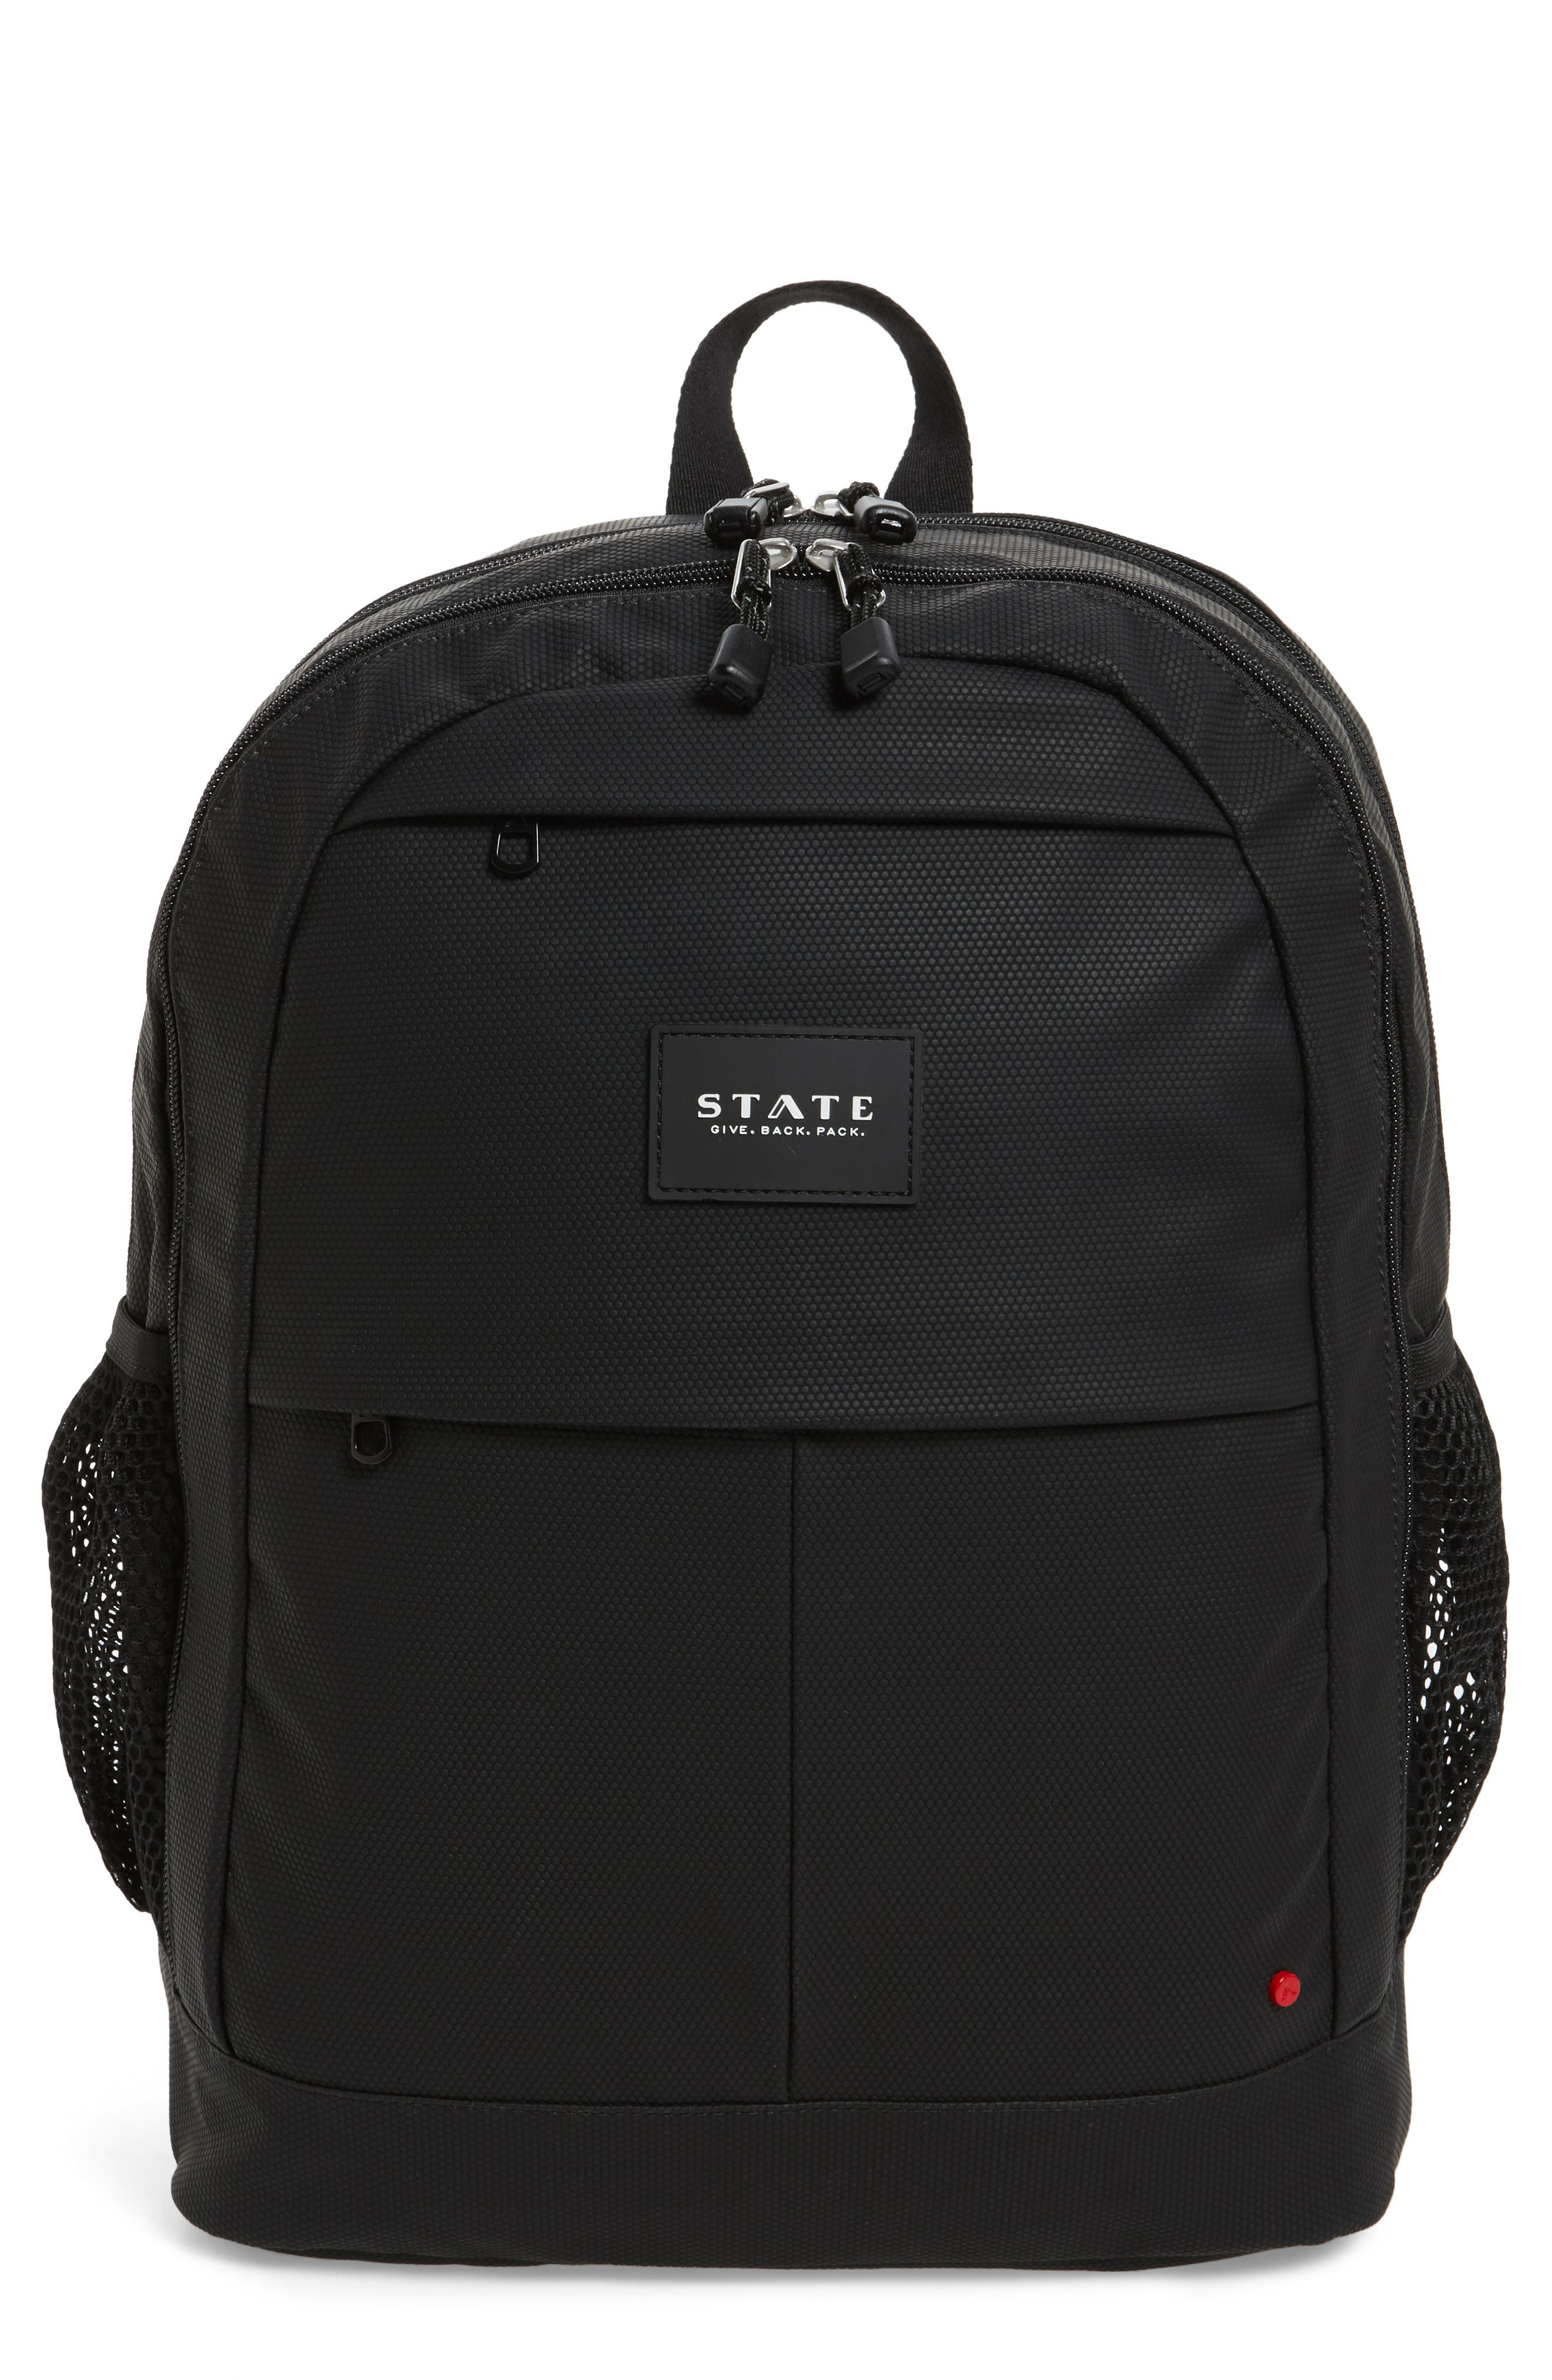 Leny Backpack,                         Main,                         color, 001